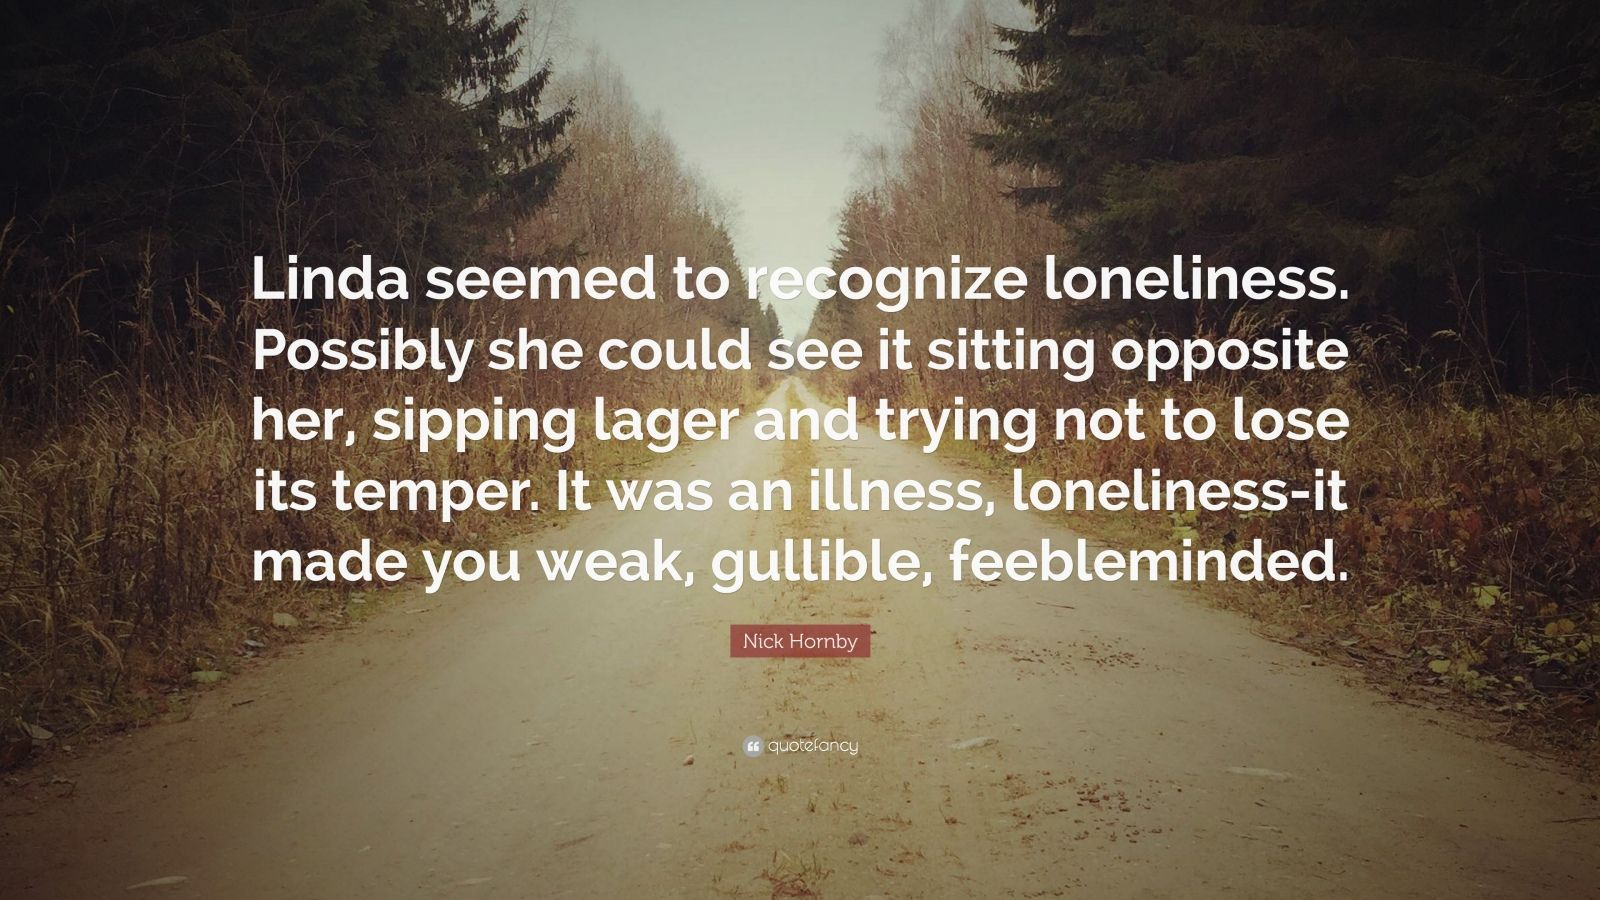 """Nick Hornby Quote: """"Linda seemed to recognize loneliness. Possibly she could see it sitting opposite her, sipping lager and trying not to lose its temper. It was an illness, loneliness-it made you weak, gullible, feebleminded."""""""